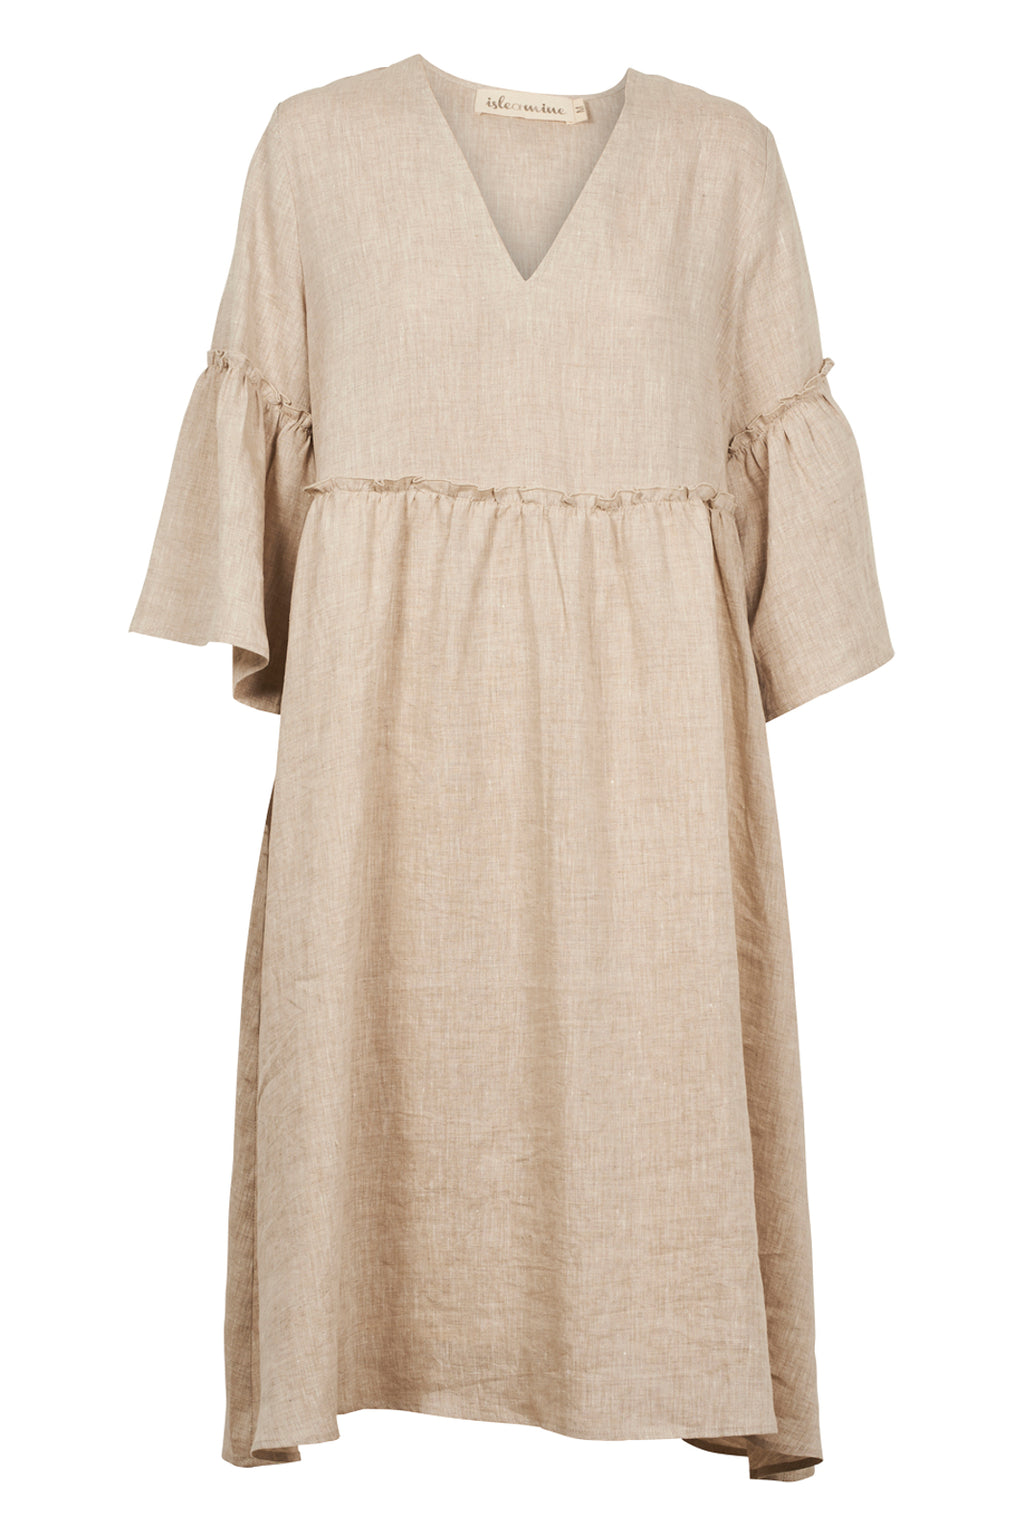 Eve Dress - Wheat - Isle of Mine Clothing - Dress Linen